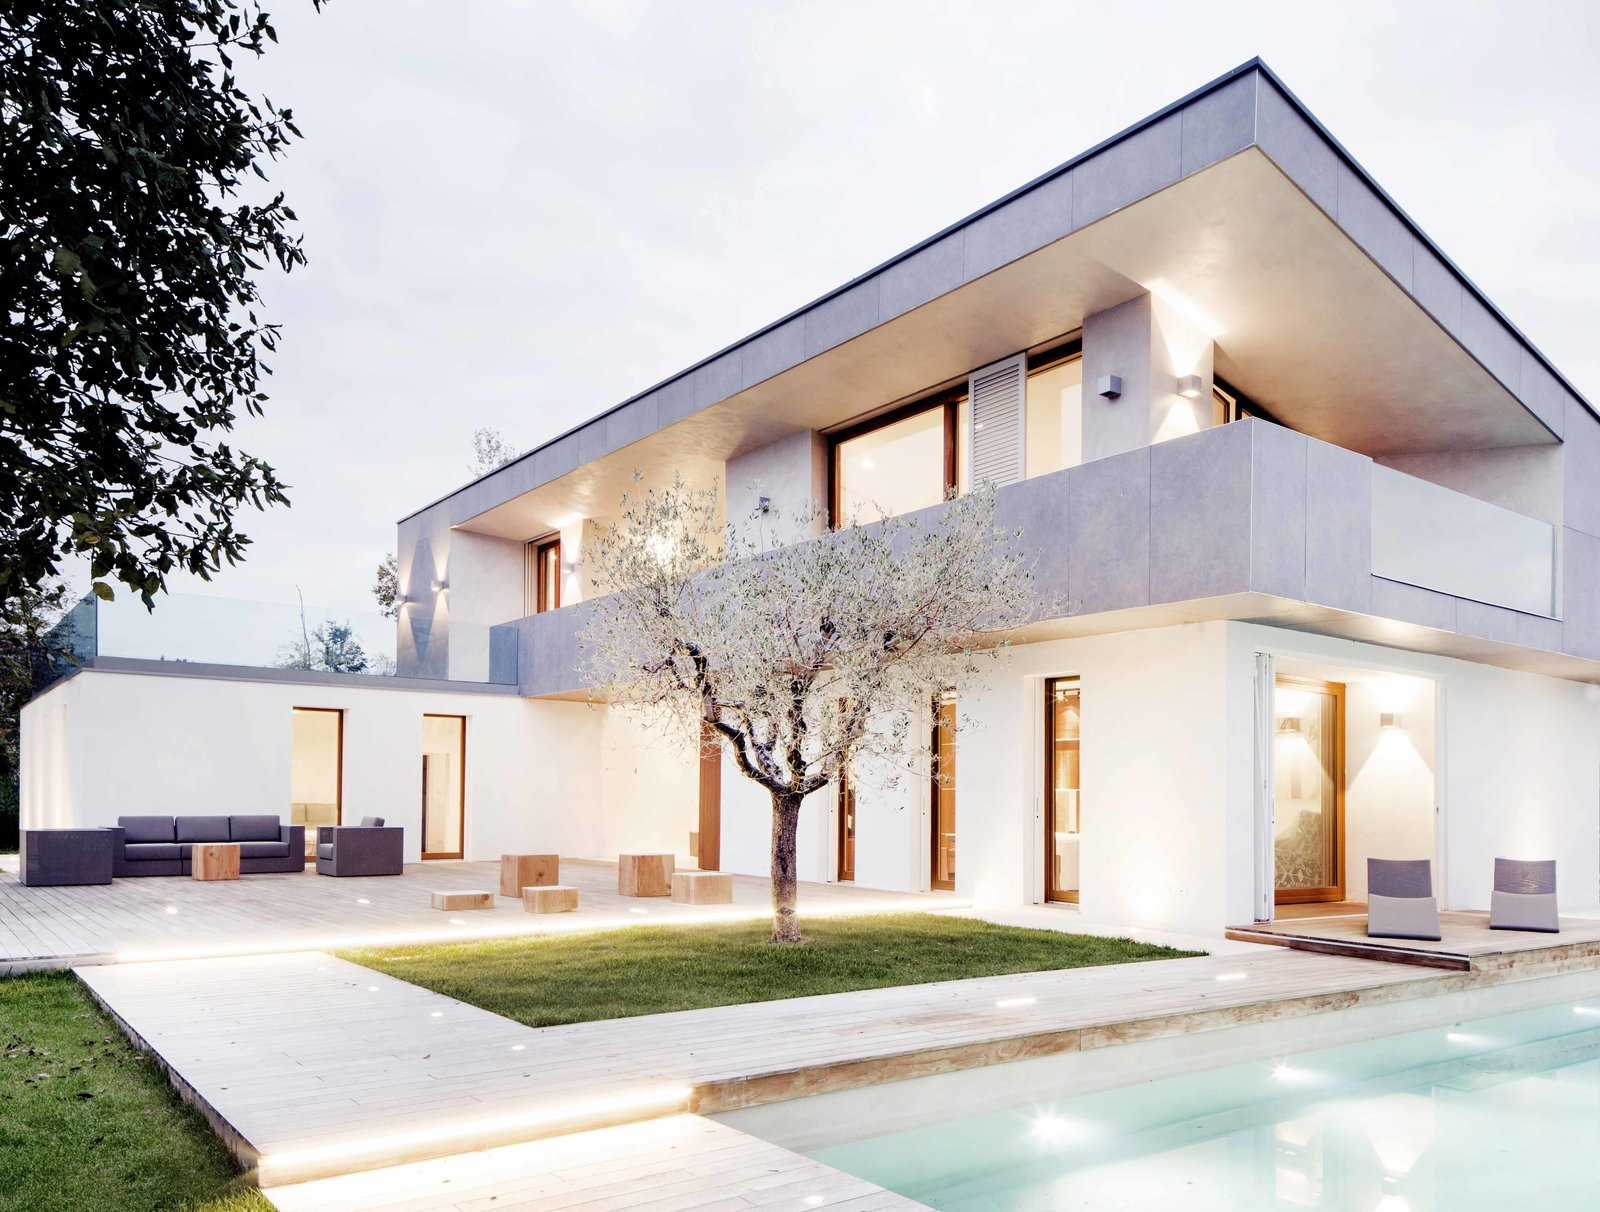 Photo 1 of 5 in Pulling off Mediterranean Modern in Tuscany